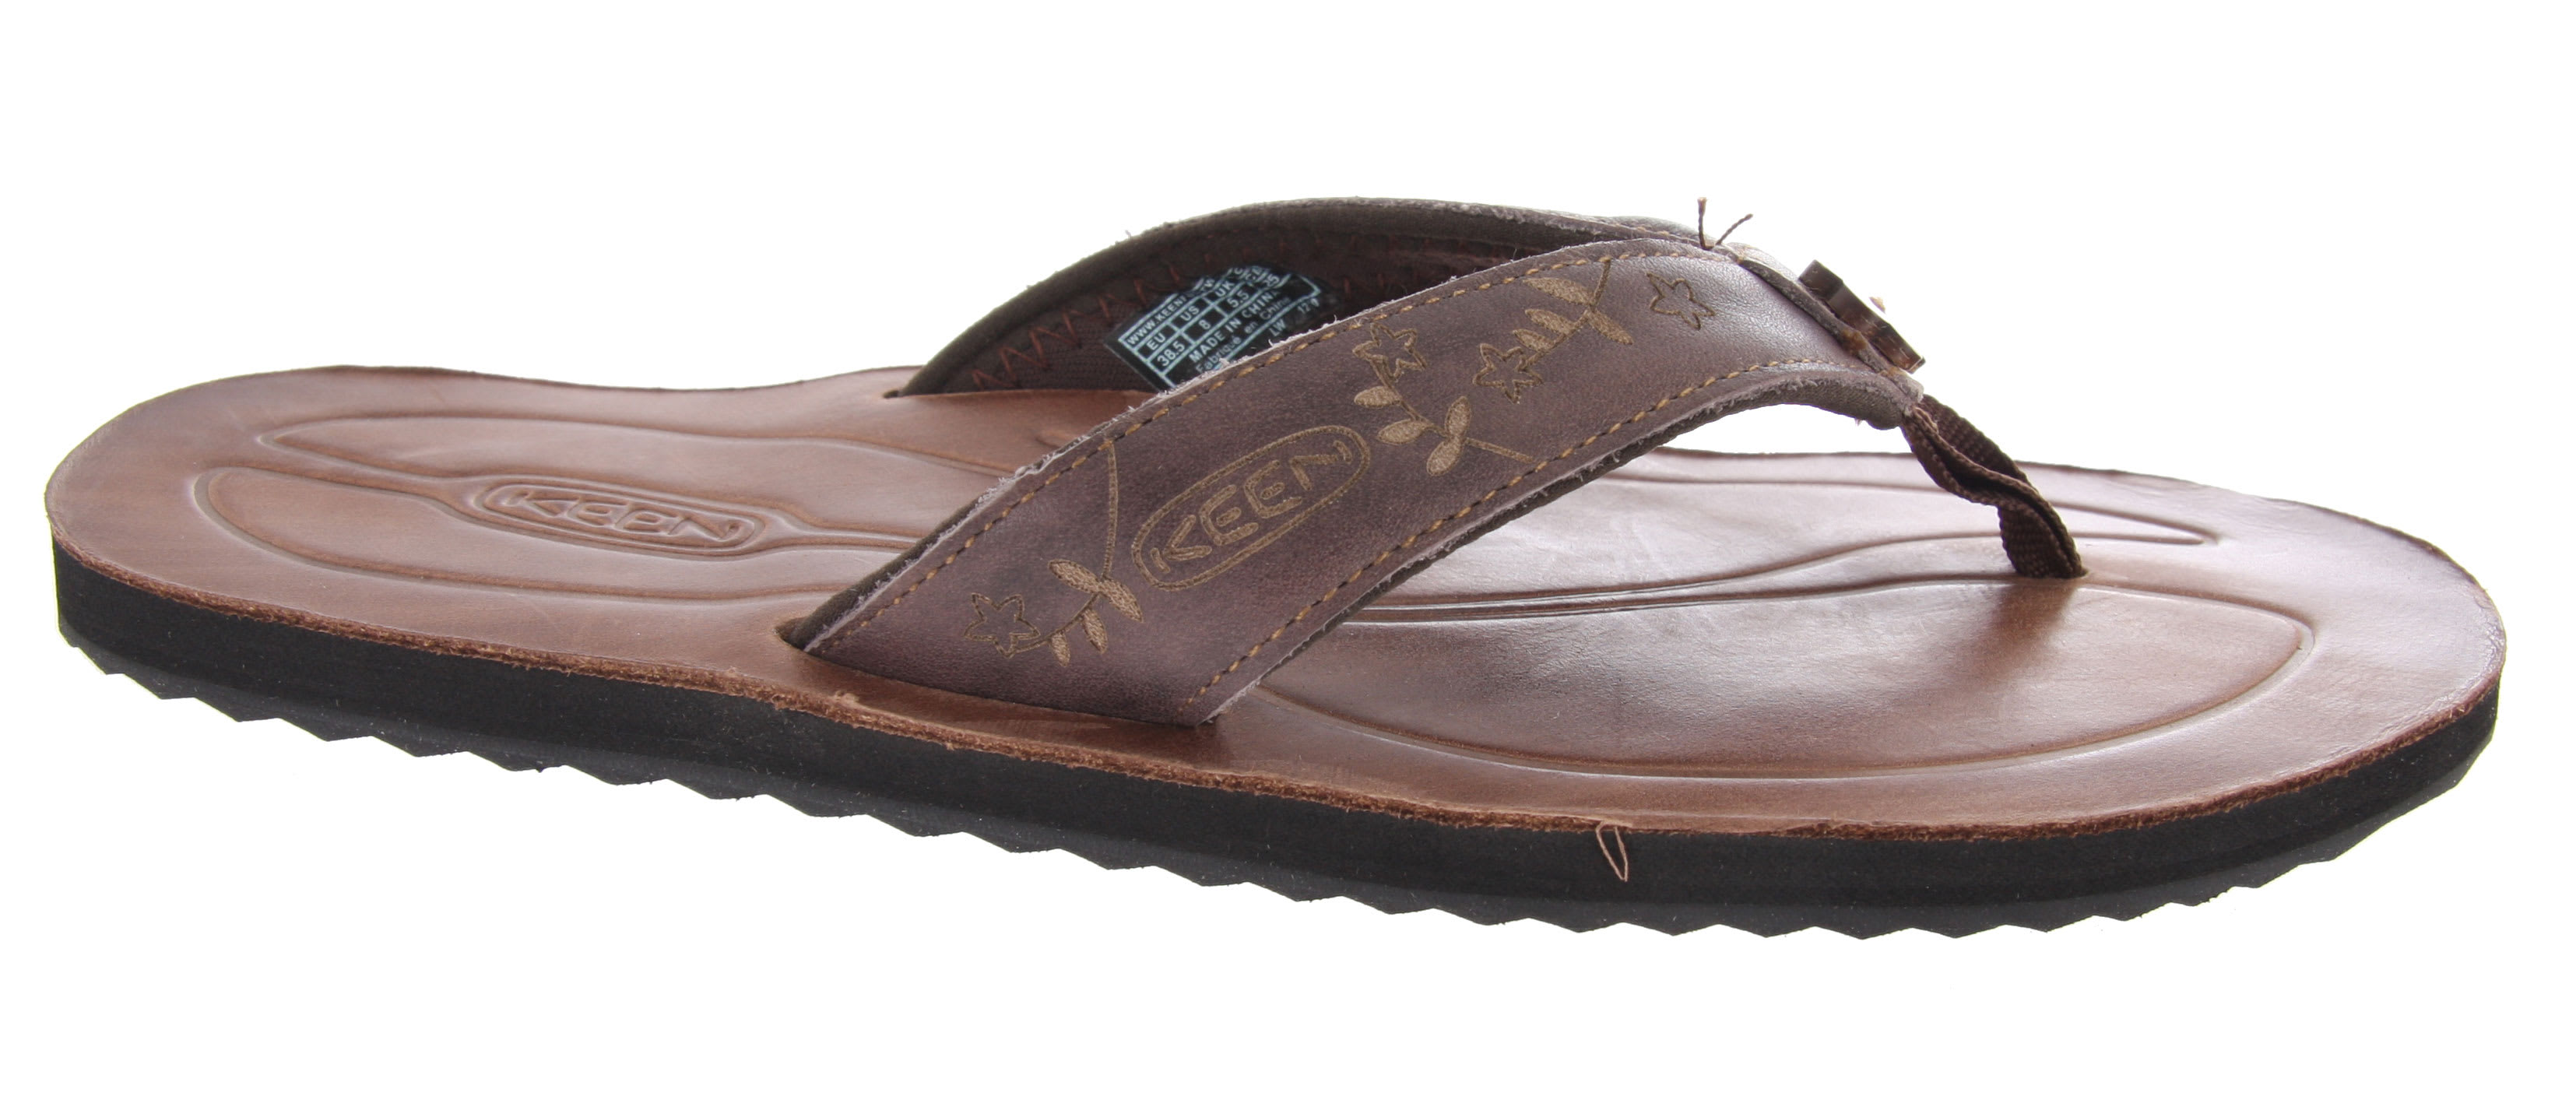 Shop for Keen Florence Flip Sandals Bulbe - Women's